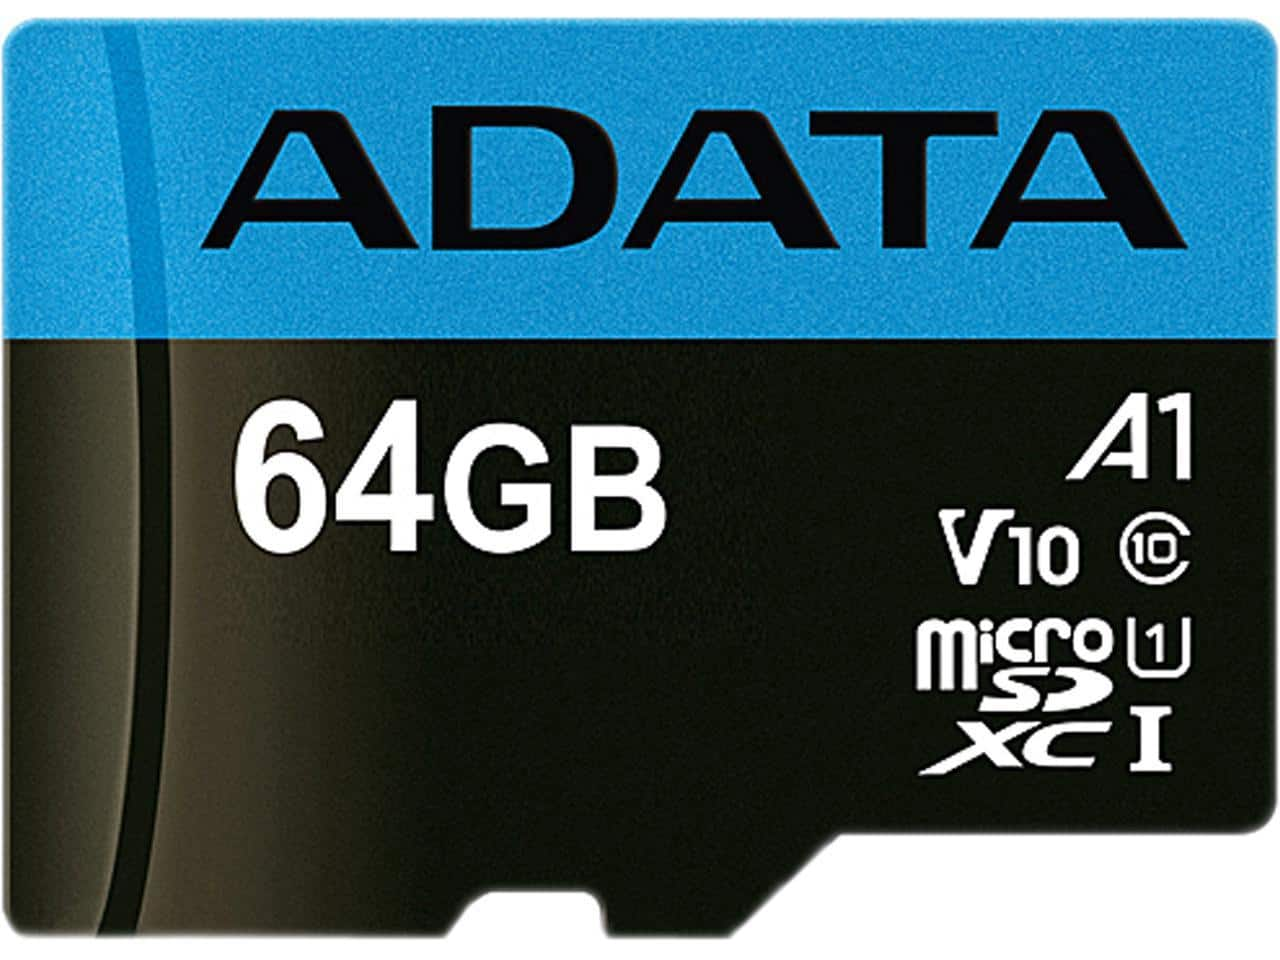 ADATA 64GB Premier microSDXC UHS-I / Class 10 V10 A1 with SD Adapter $12.99